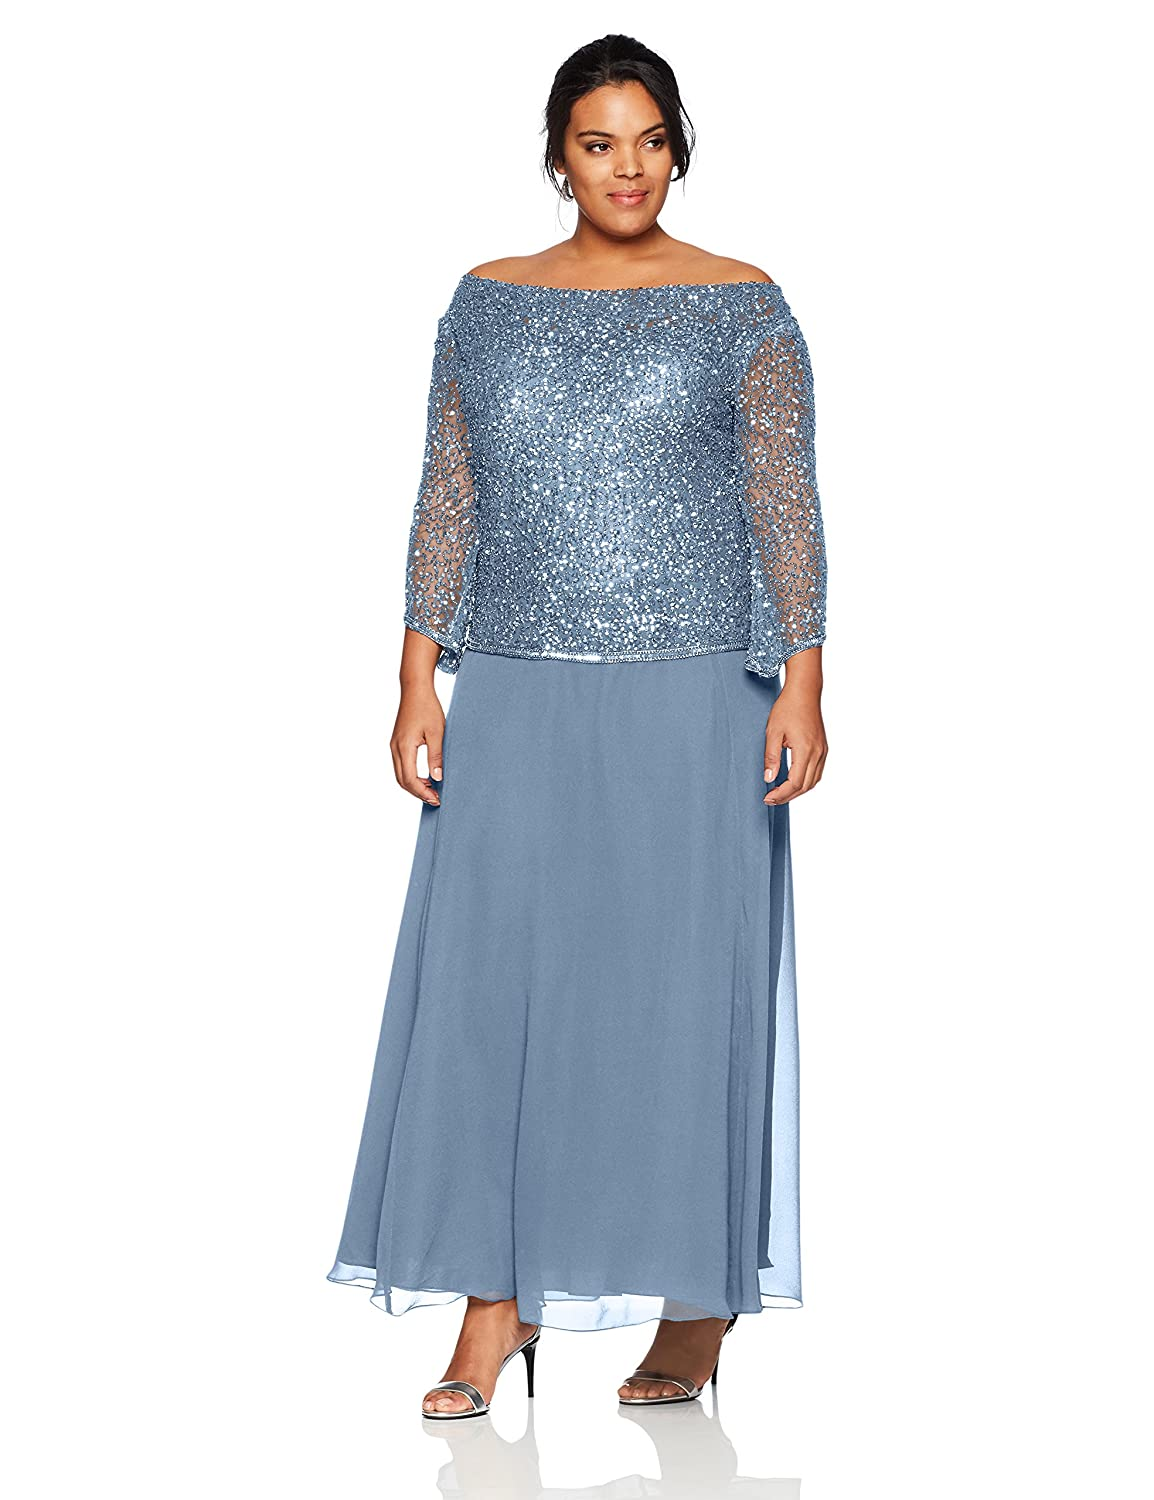 Dusty bluee bluee J Kara Womens Plus Size Long Beaded Dress with Cowl Neck Special Occasion Dress